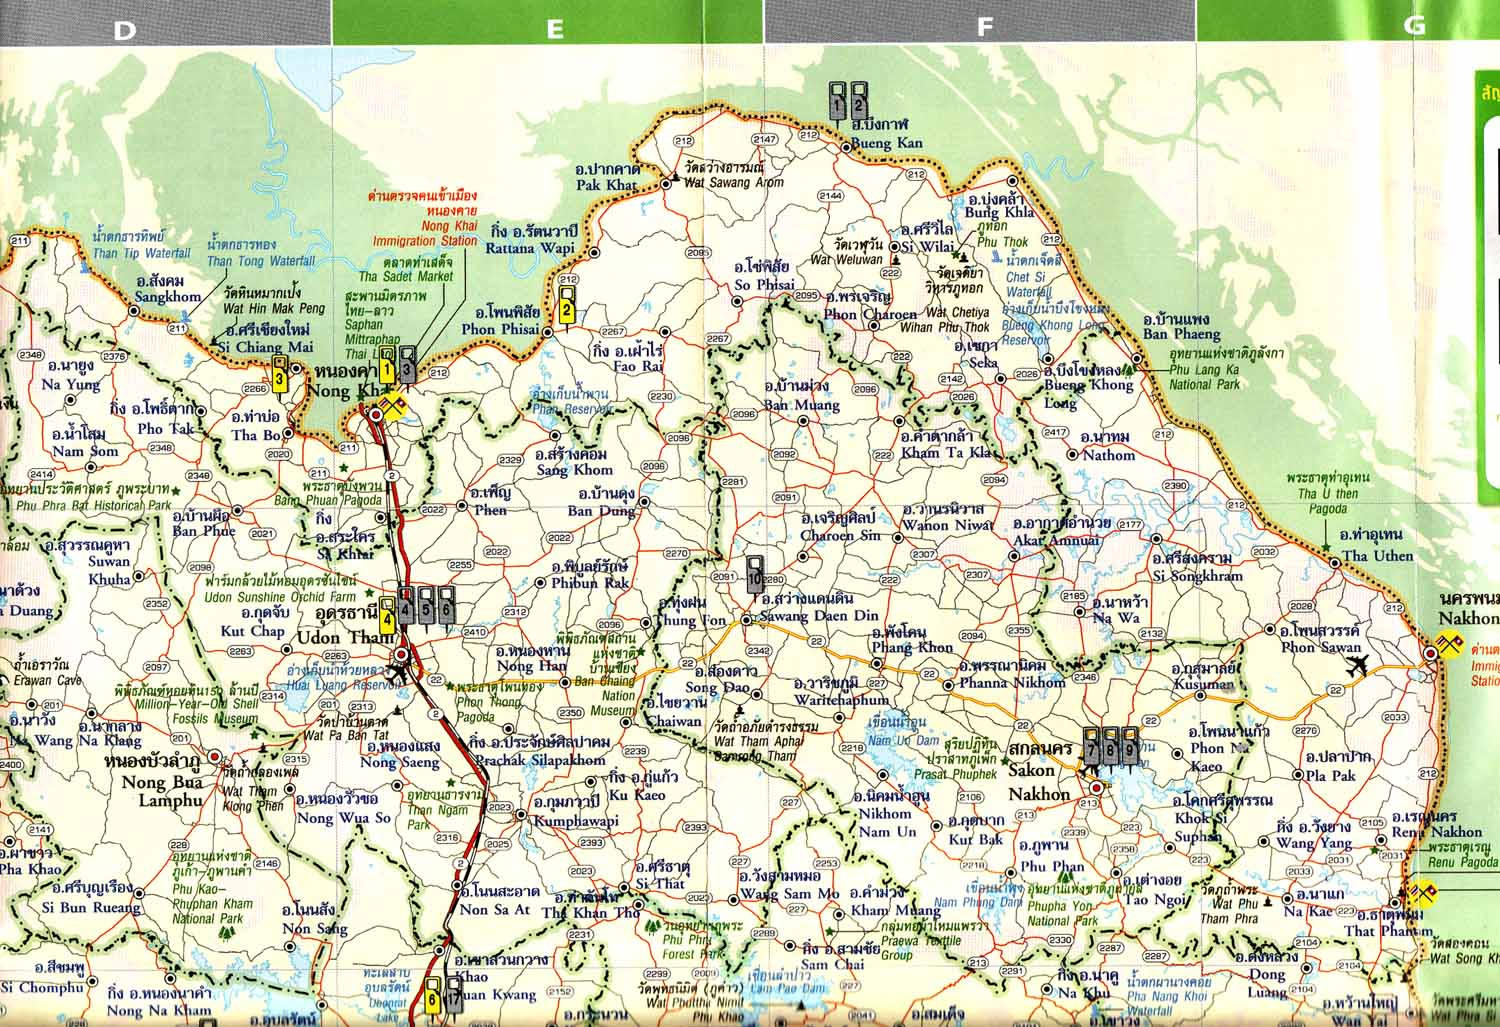 Road Maps For Bangkok Areas And Cities All Over Thailand - Map of thailand cities